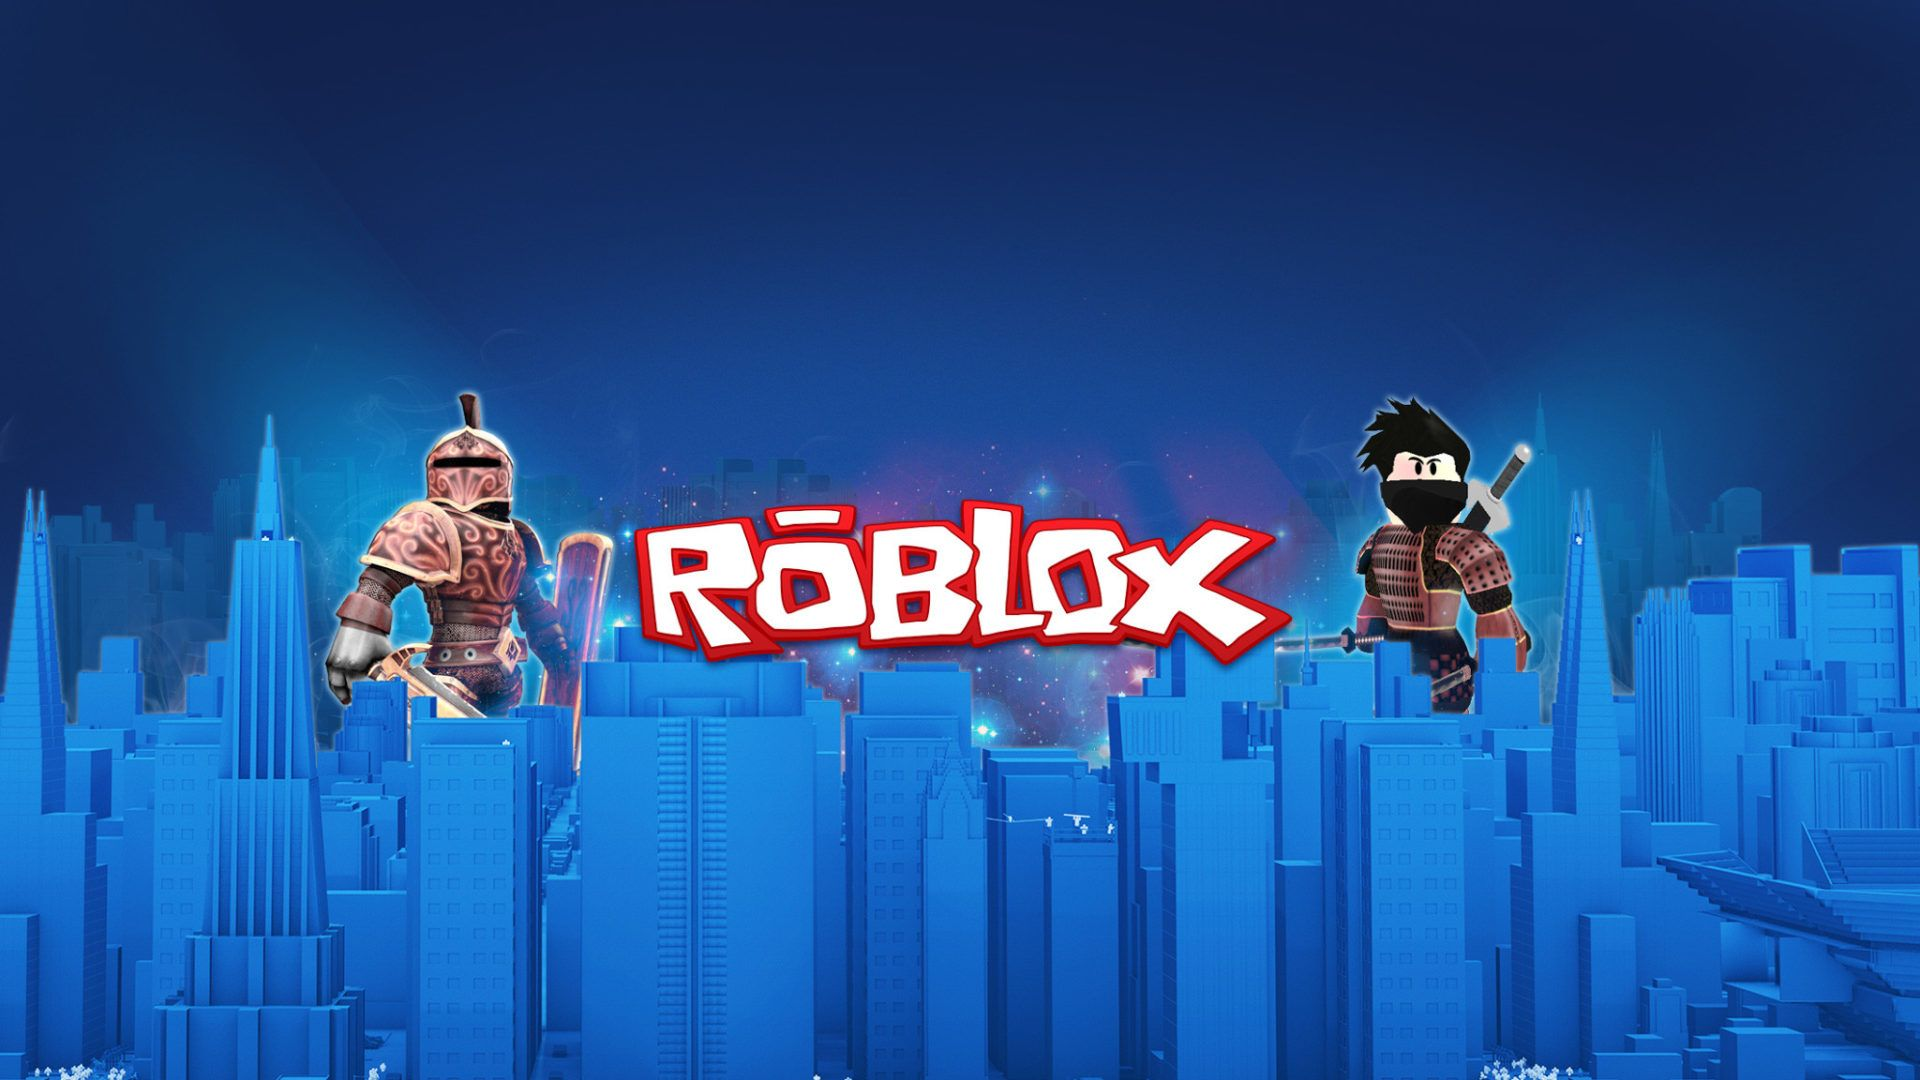 roblox gaming wallpapers on wallpaperdog